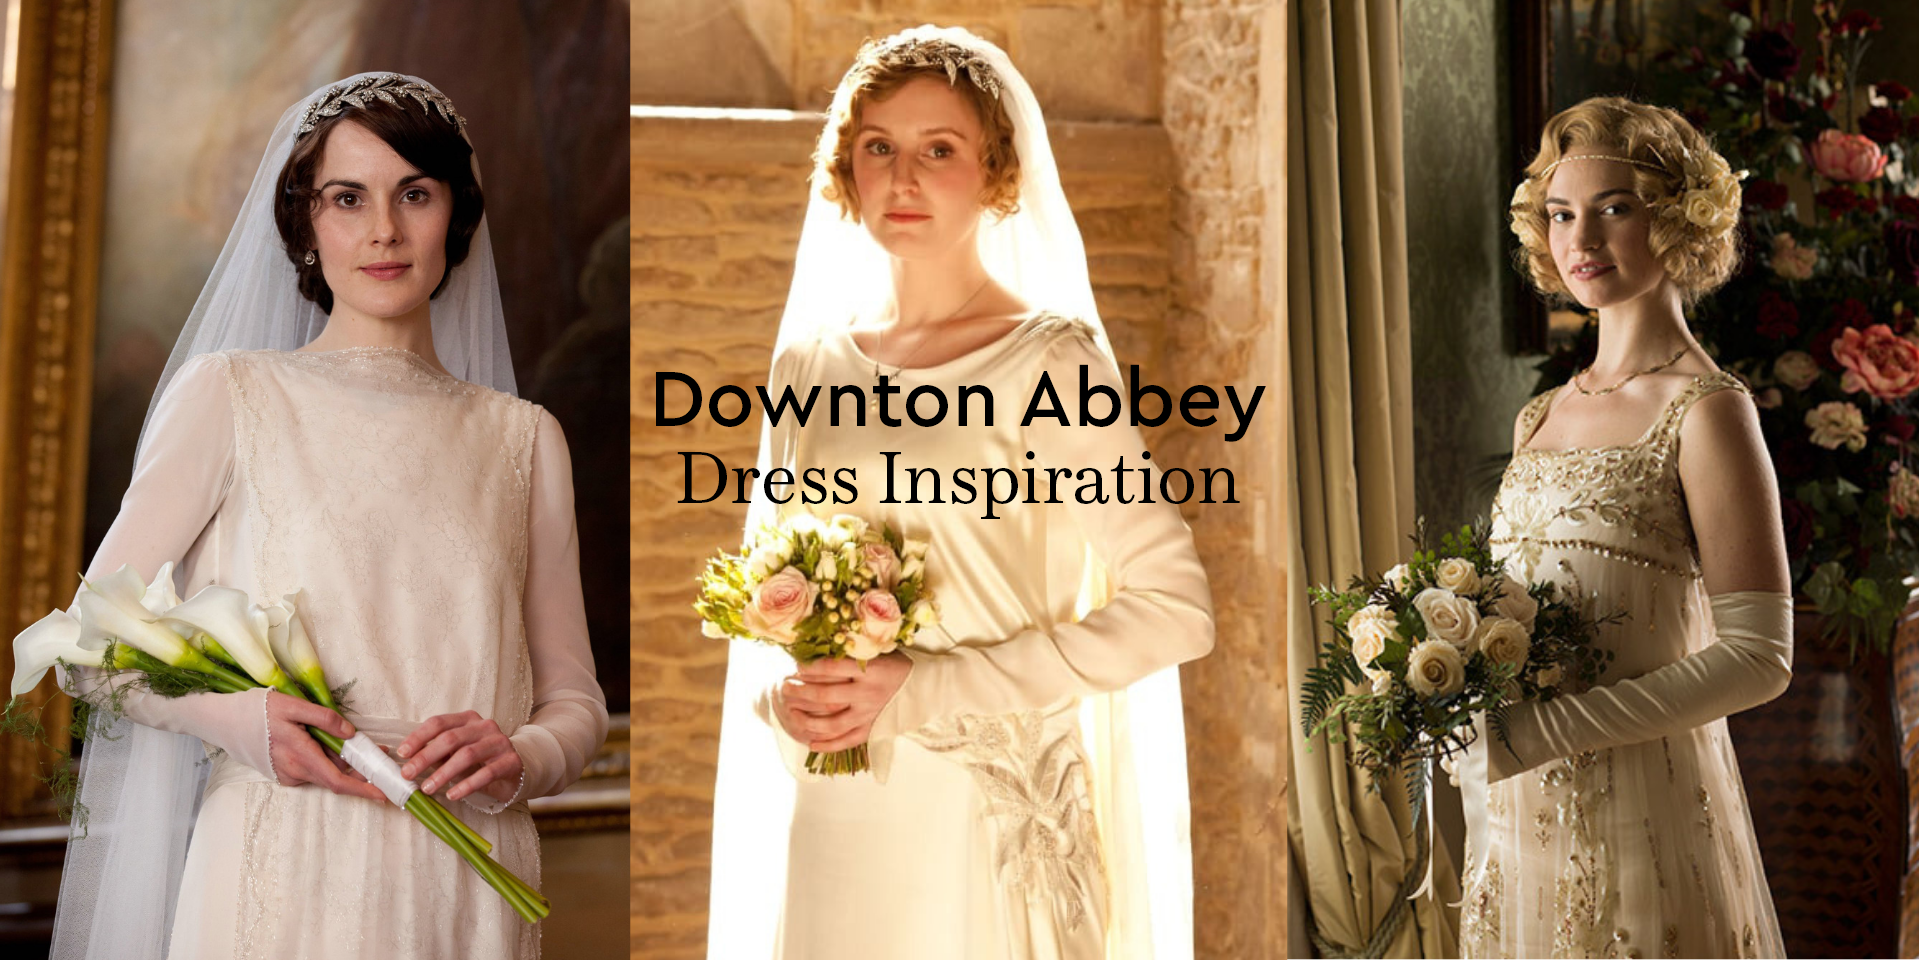 Wedding Gown Inspiration from the Ladies of Downton Abbey.